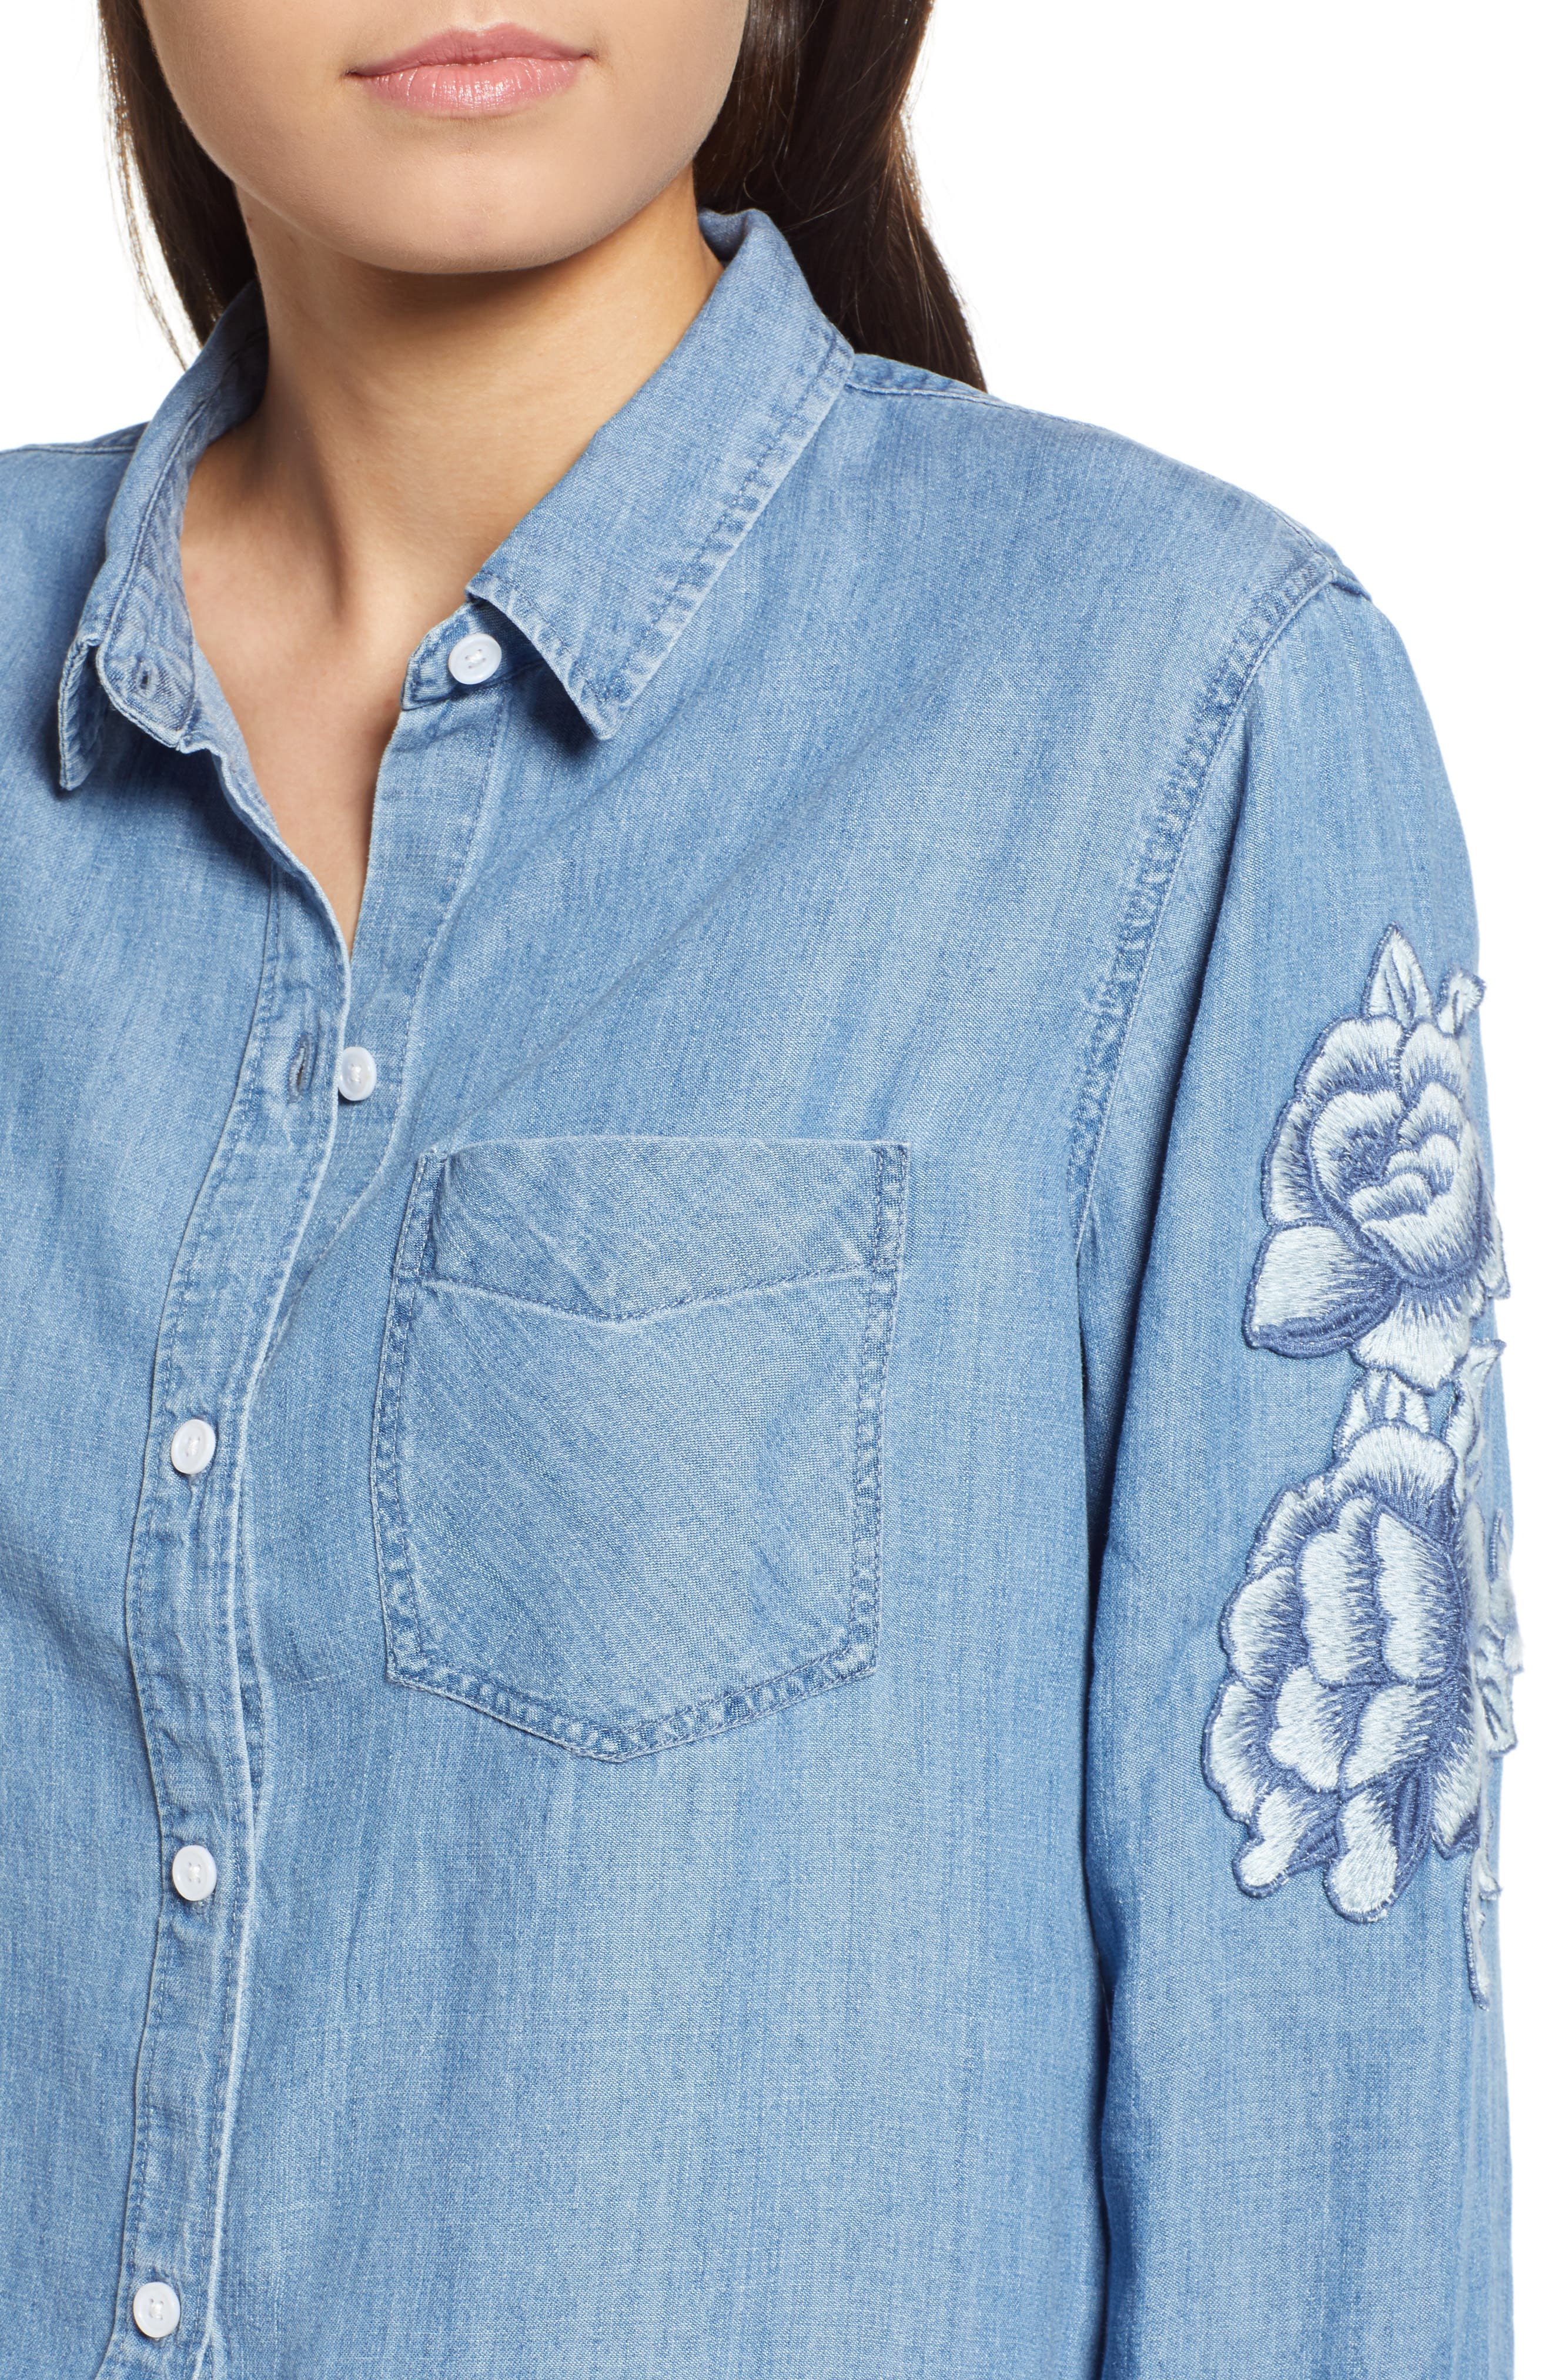 Ingrid Embroidered Chambray Shirt,                             Alternate thumbnail 4, color,                             Medium Vintage W/ White Floral